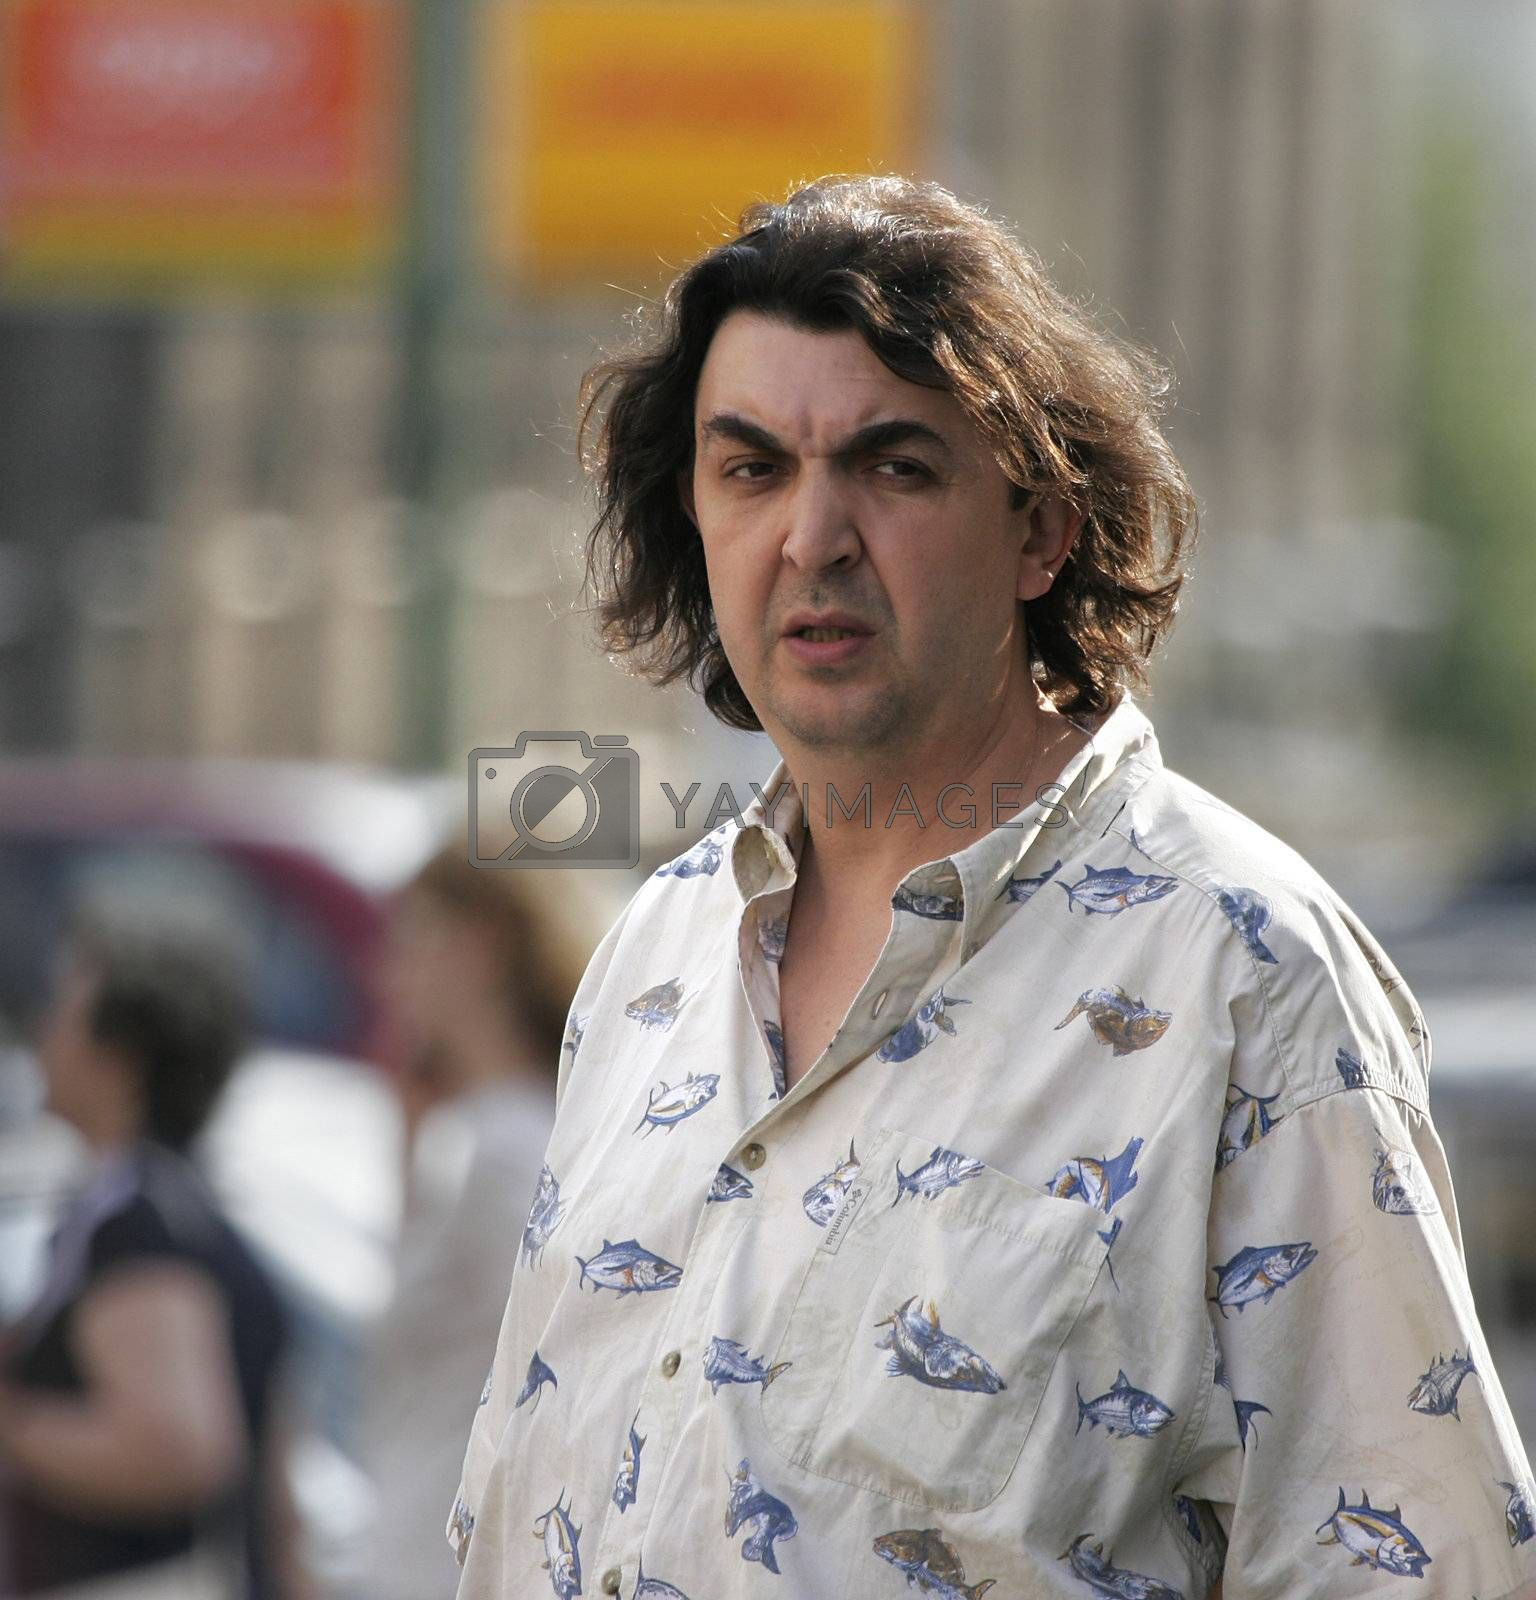 MOSCOW, RUSSIA - JUNE 26, 2006: Russian actor Igor Zolotovitsky casually embodied in the street Moscow.  June 26, 2006. Moscow